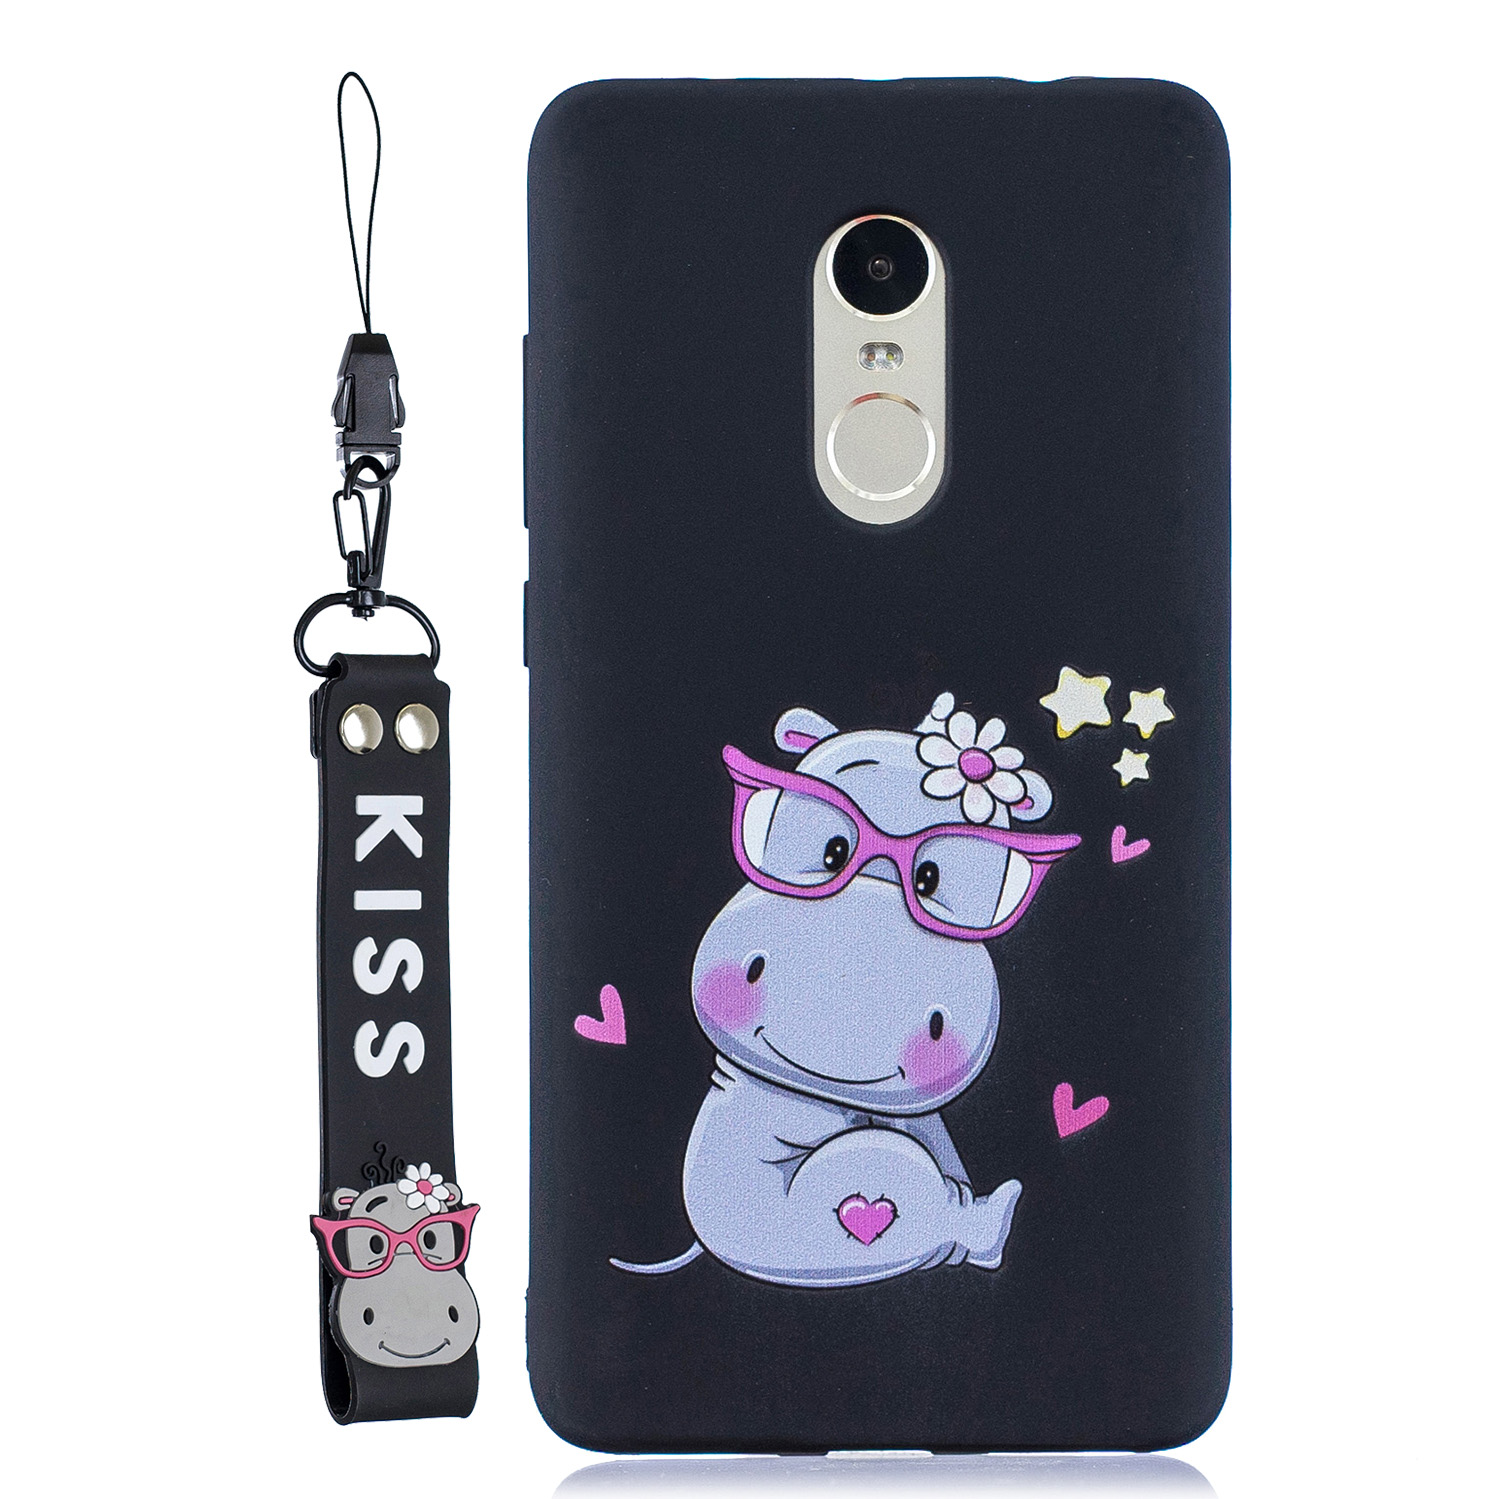 For Redmi note 4X/NOTE 4 Cartoon Lovely Coloured Painted Soft TPU Back Cover Non-slip Shockproof Full Protective Case with Lanyard black